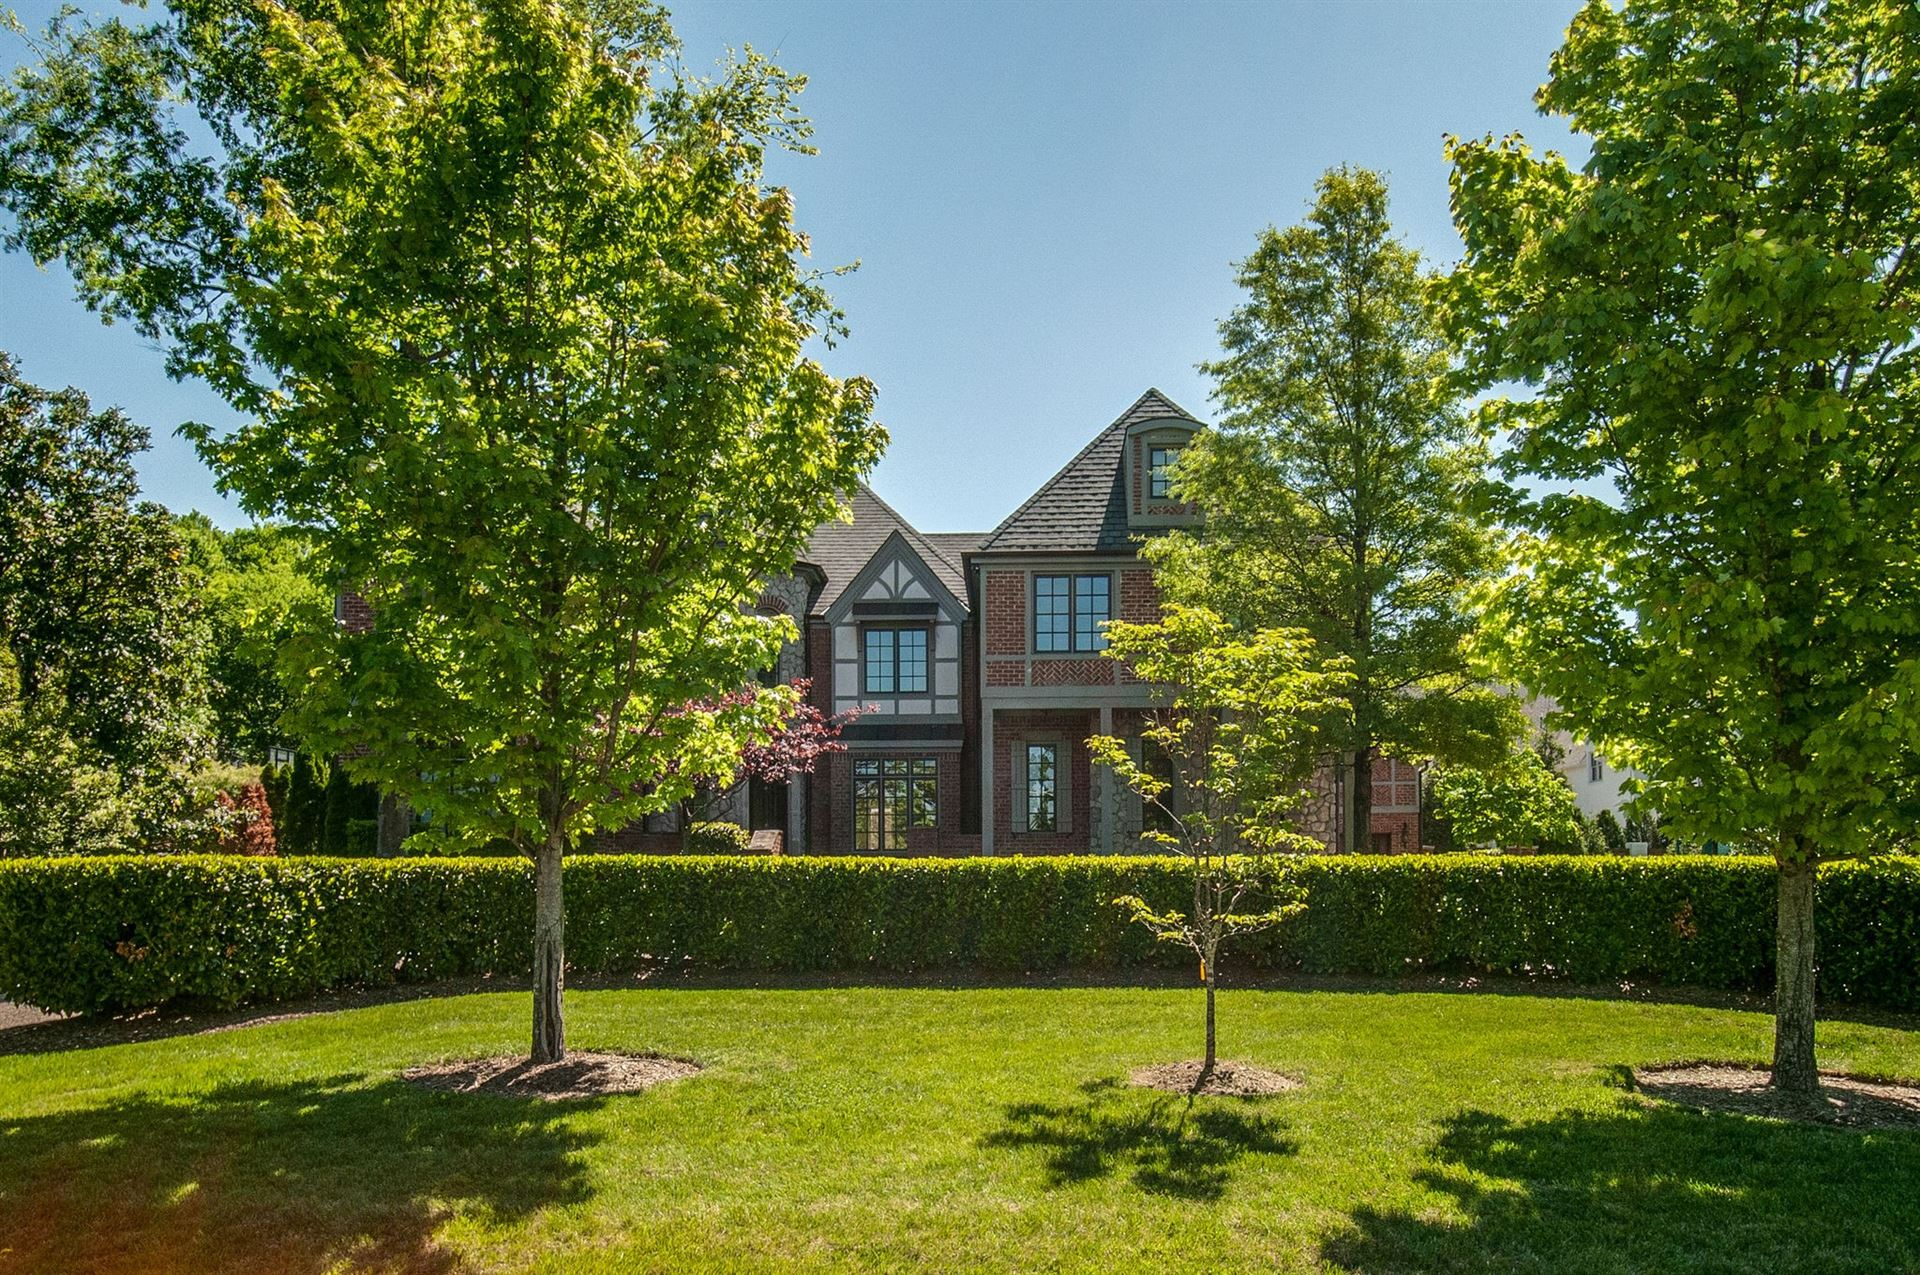 Photo of 3442 Golf Club Ln, Nashville, TN 37215 (MLS # 2148260)